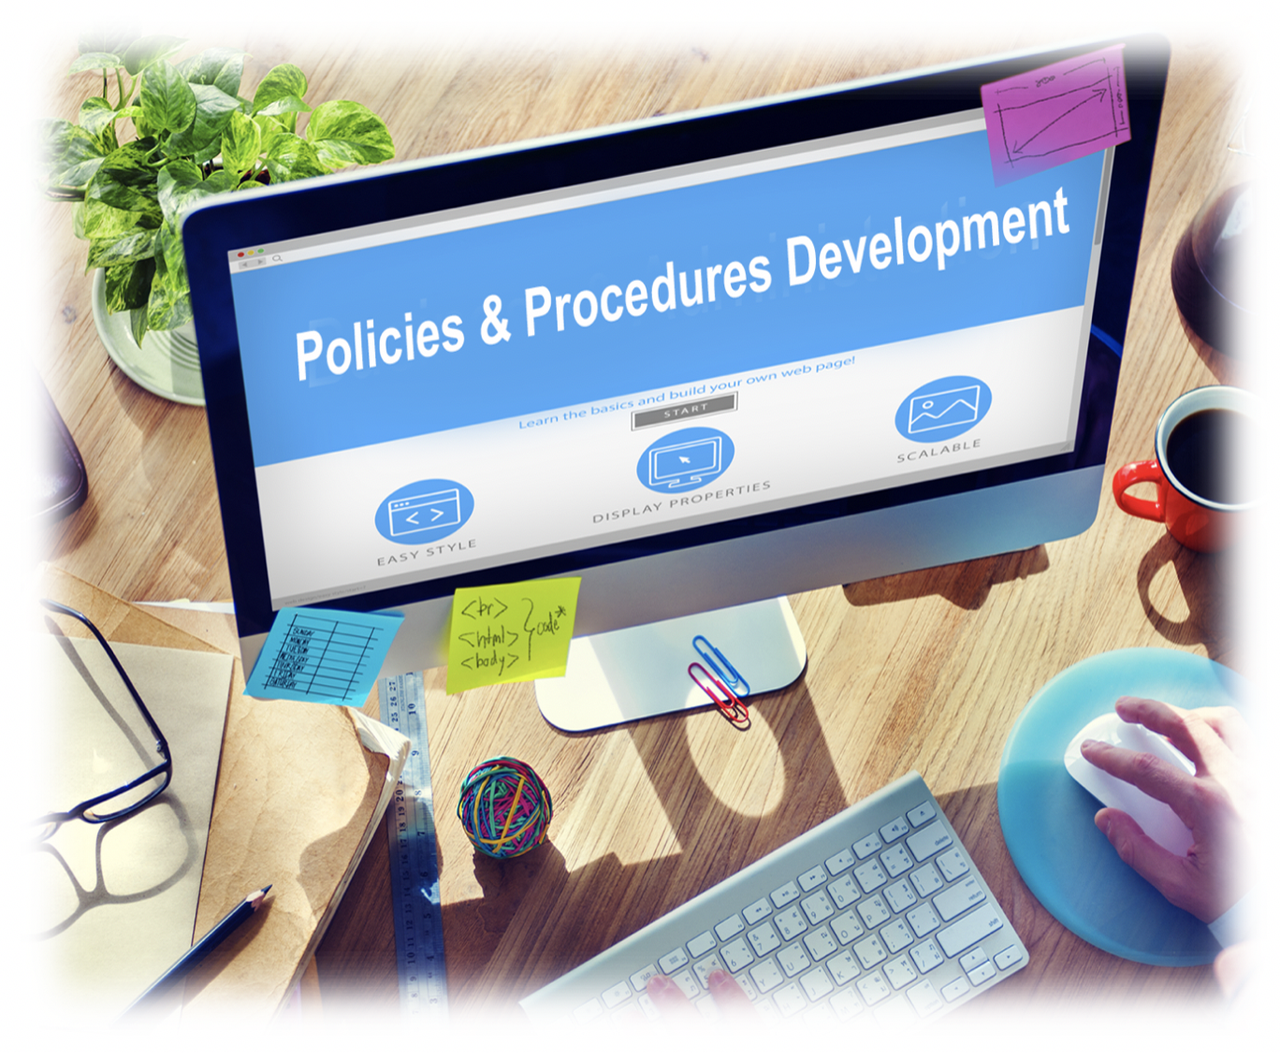 policies & procedures development.png